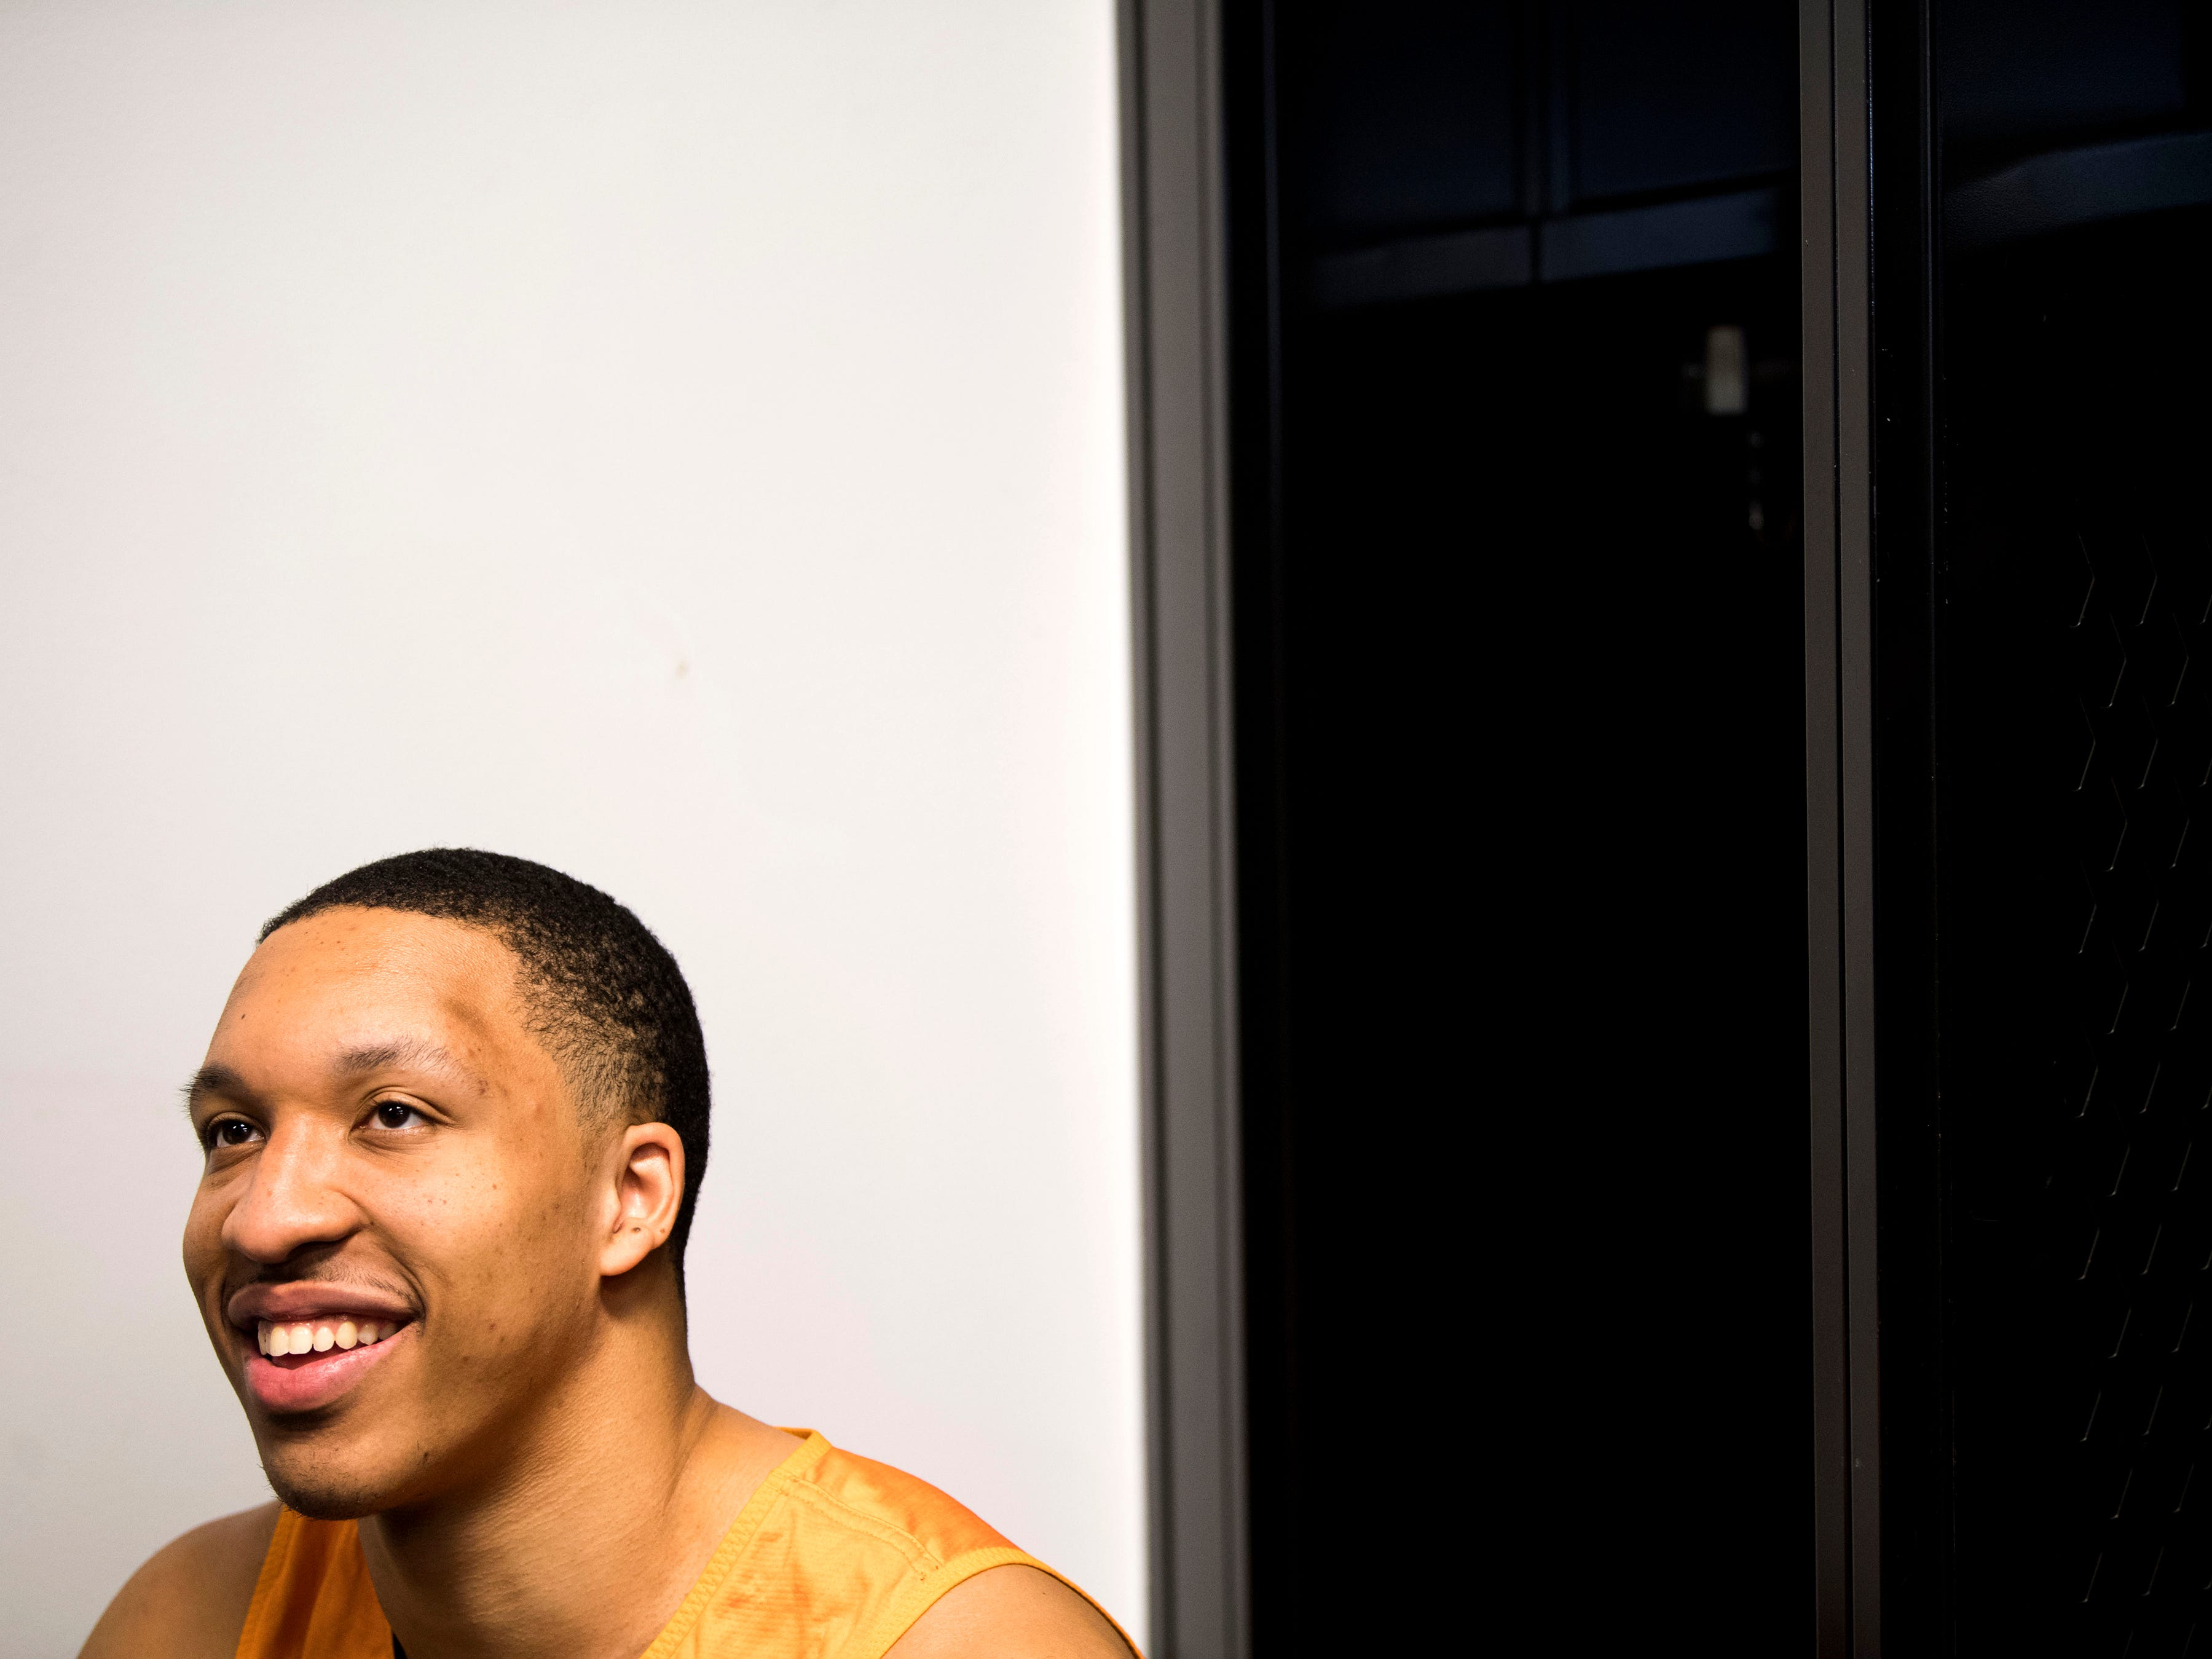 Tennessee forward Grant Williams (2) speaks with members of the media on Saturday, March 23, 2019, before the Tennessee Volunteers and Iowa Hawkeyes compete against one another in the second round of the NCAA Tournament held at Nationwide Arena in Columbus, Ohio on Sunday, March 24, 2019.